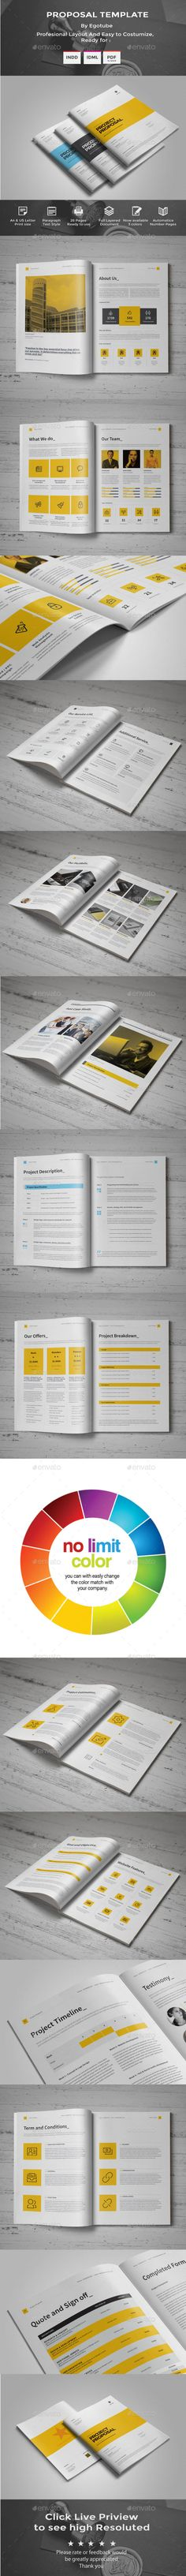 Clean Golf Tournament Proposal Golf, Proposals and Cleanses - Sample Contract Proposal Template